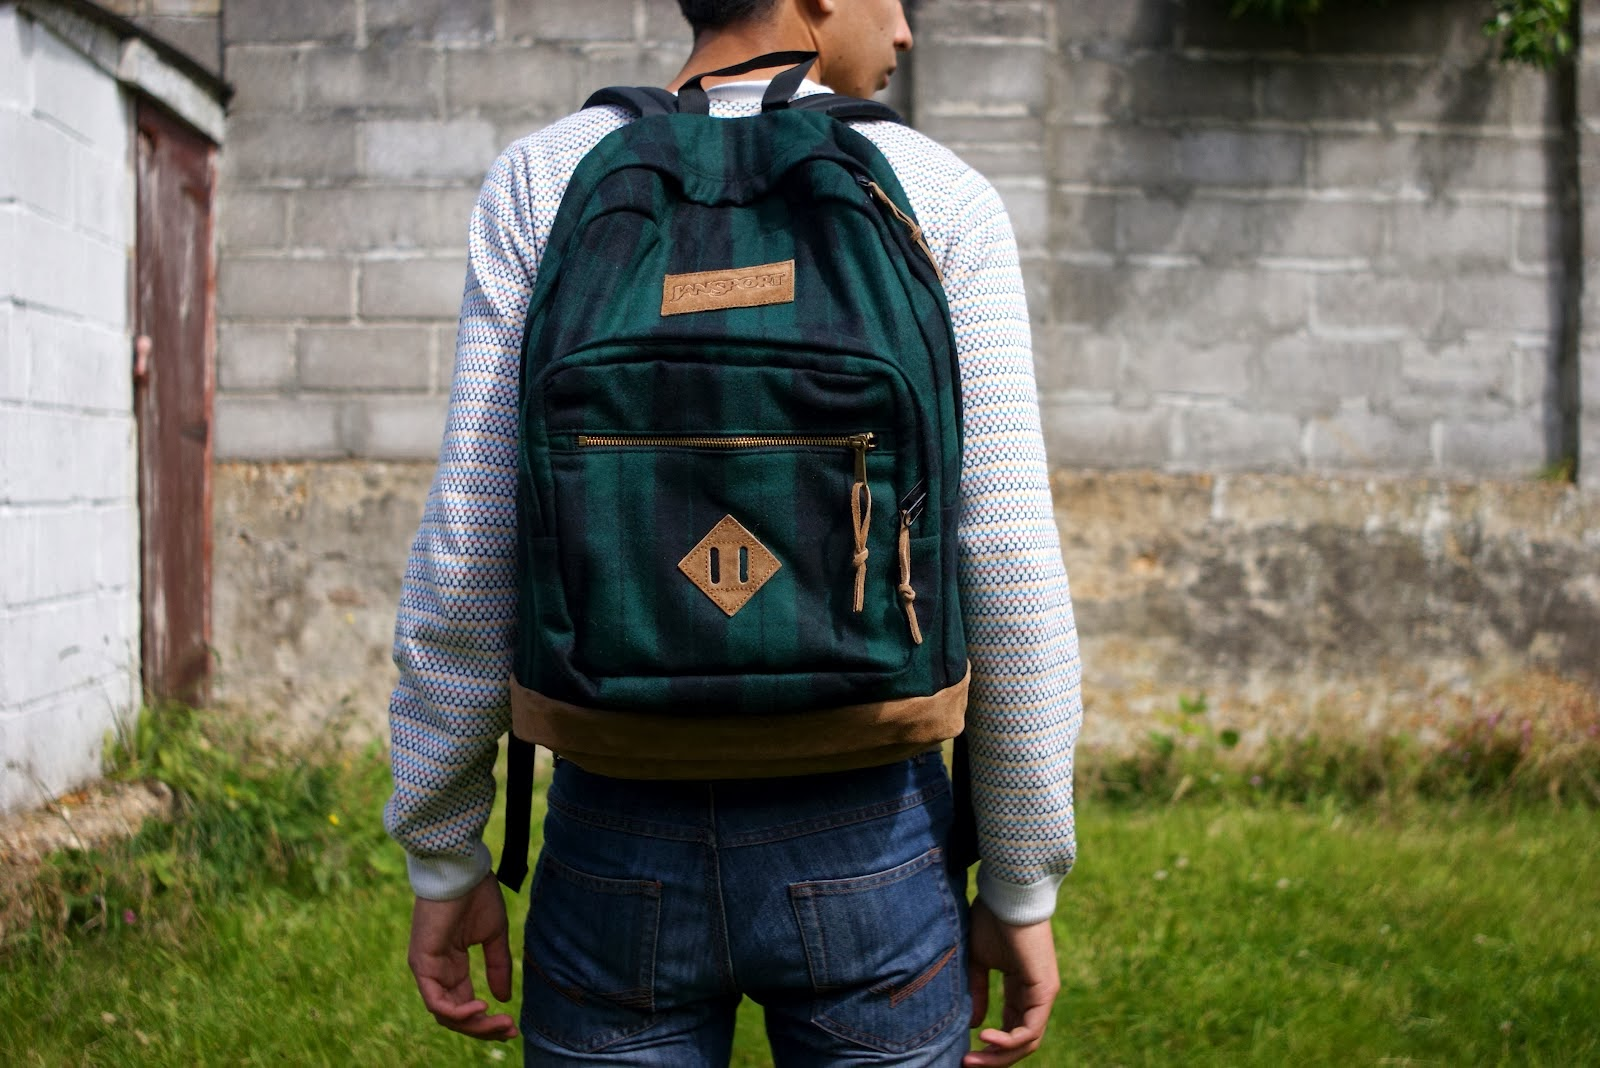 JanSport Backpack Review | Fashion Built to Last